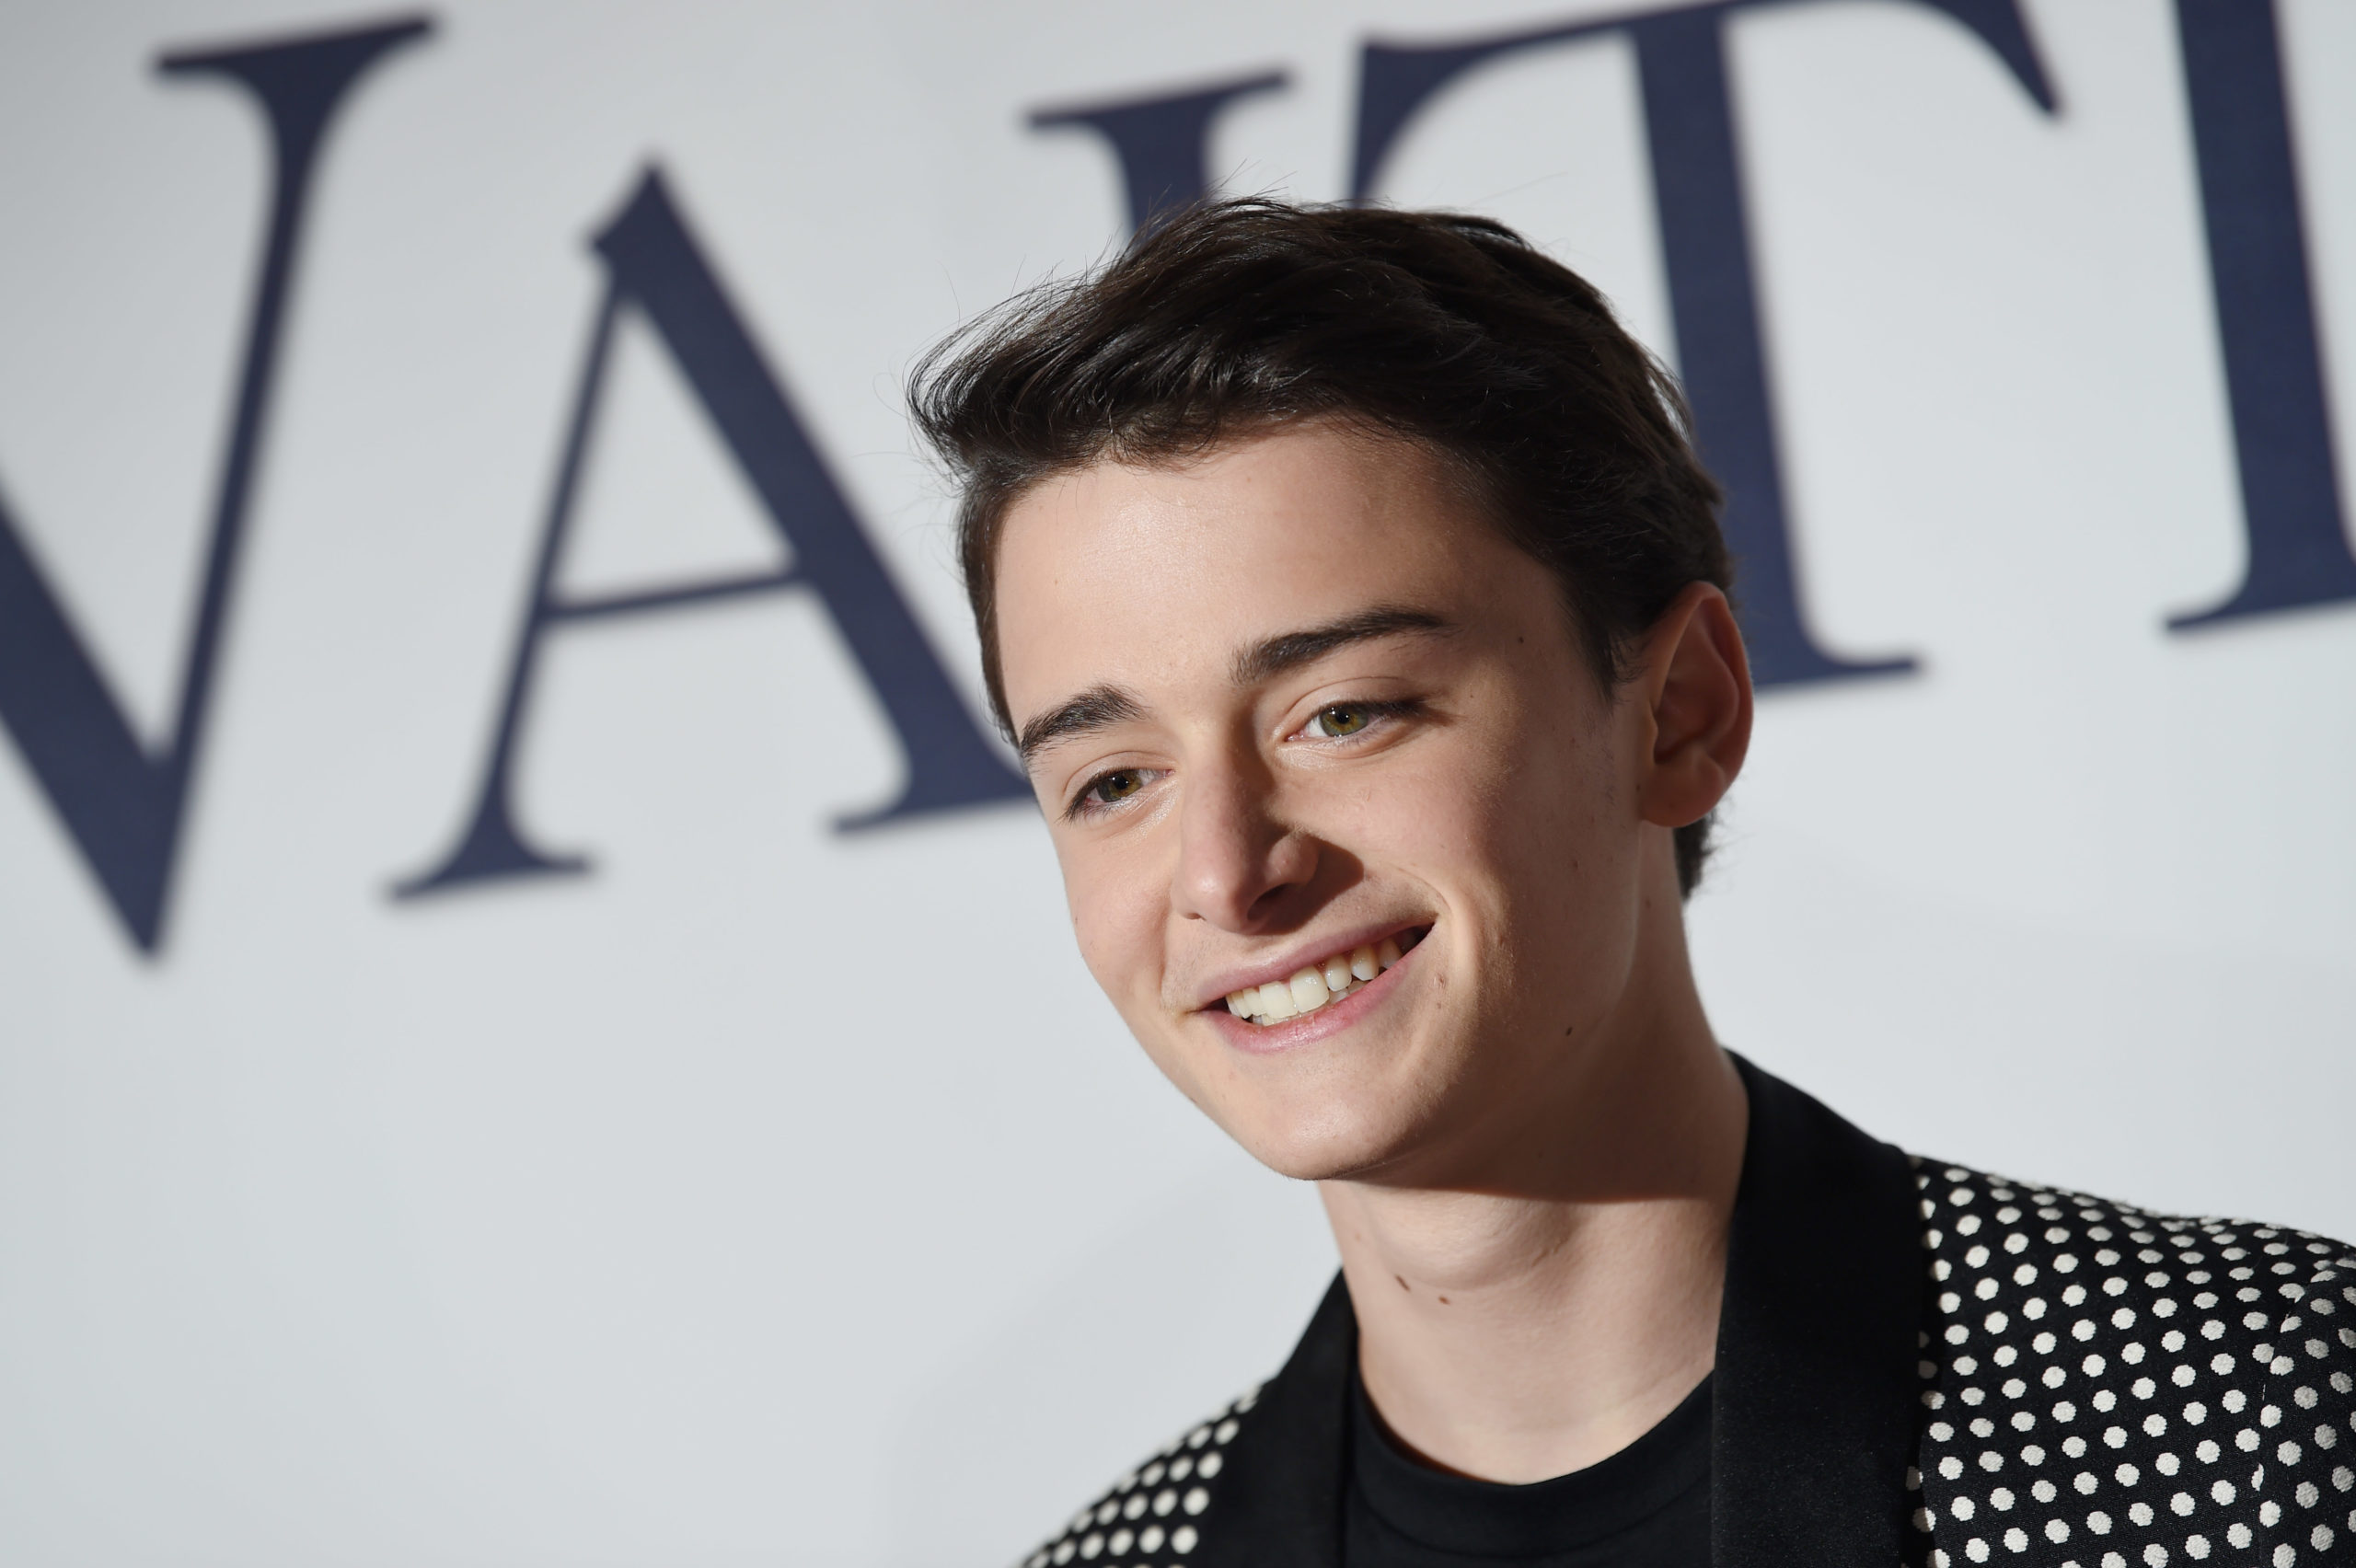 Noah Schnapp plays Will Byers in Stranger Things